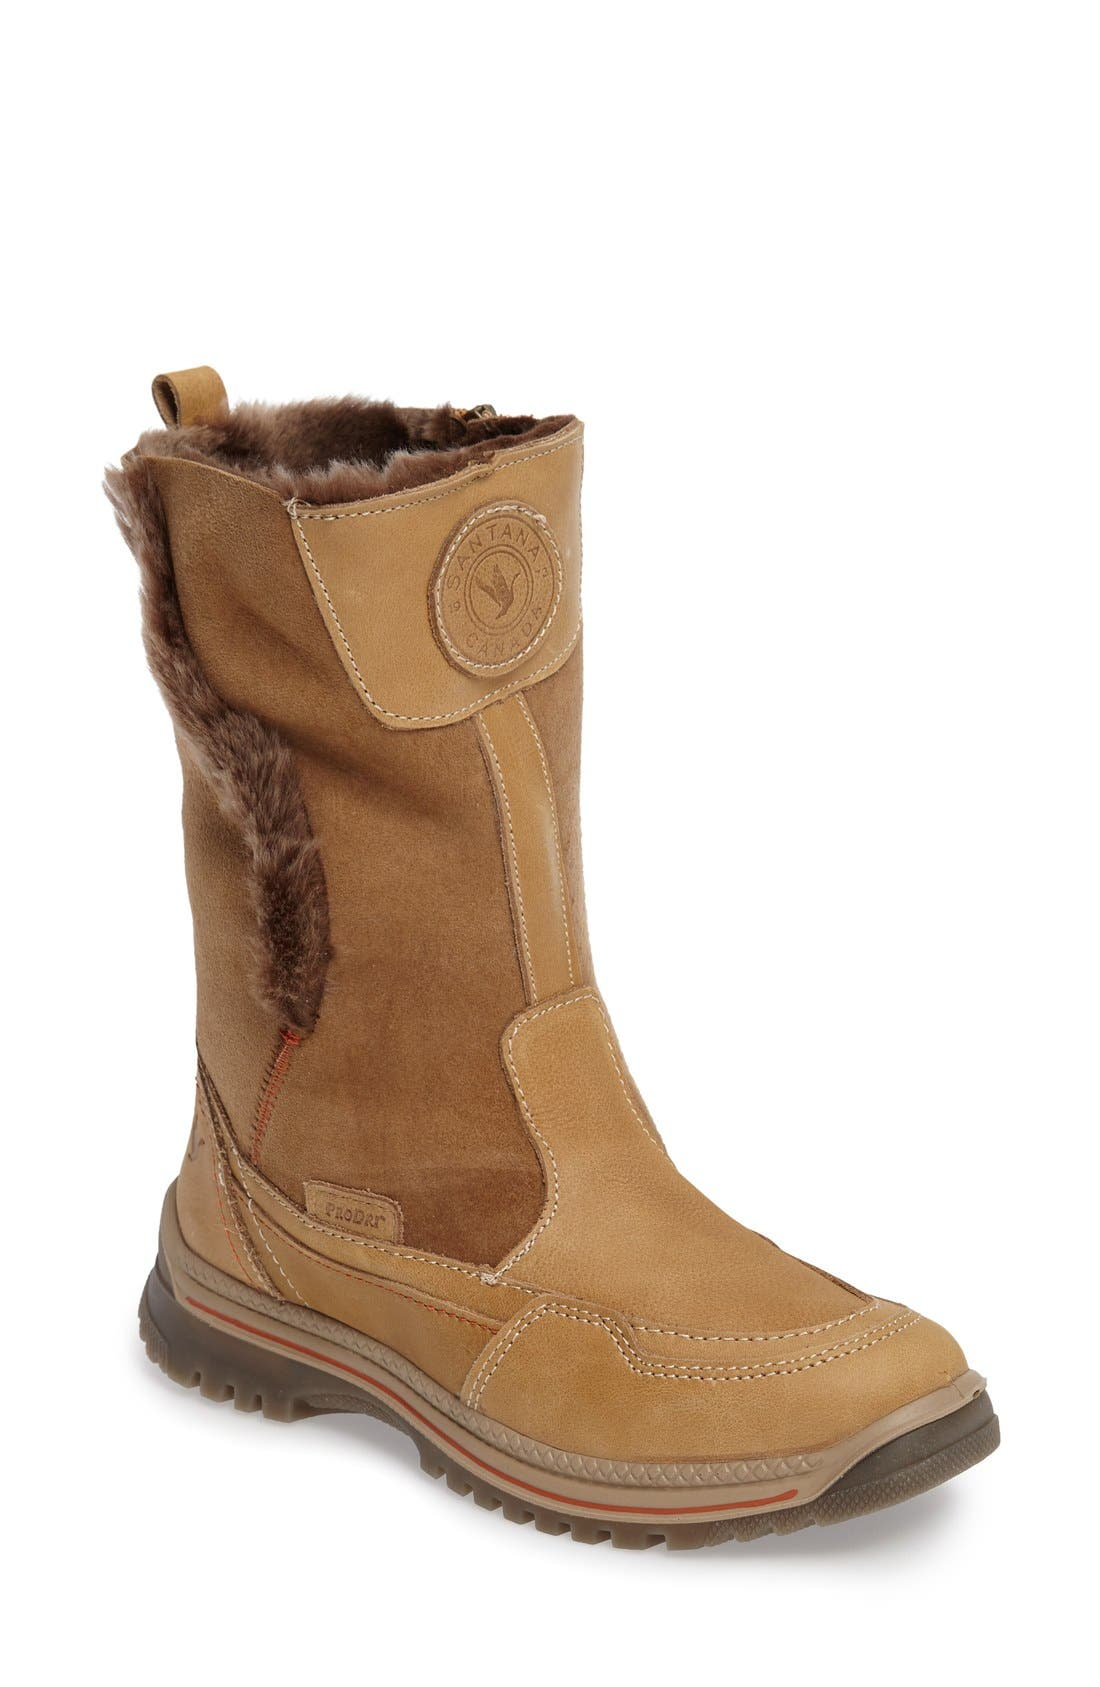 Seraphine Genuine Shearling Waterproof Winter Boot,                             Main thumbnail 1, color,                             Camel Leather